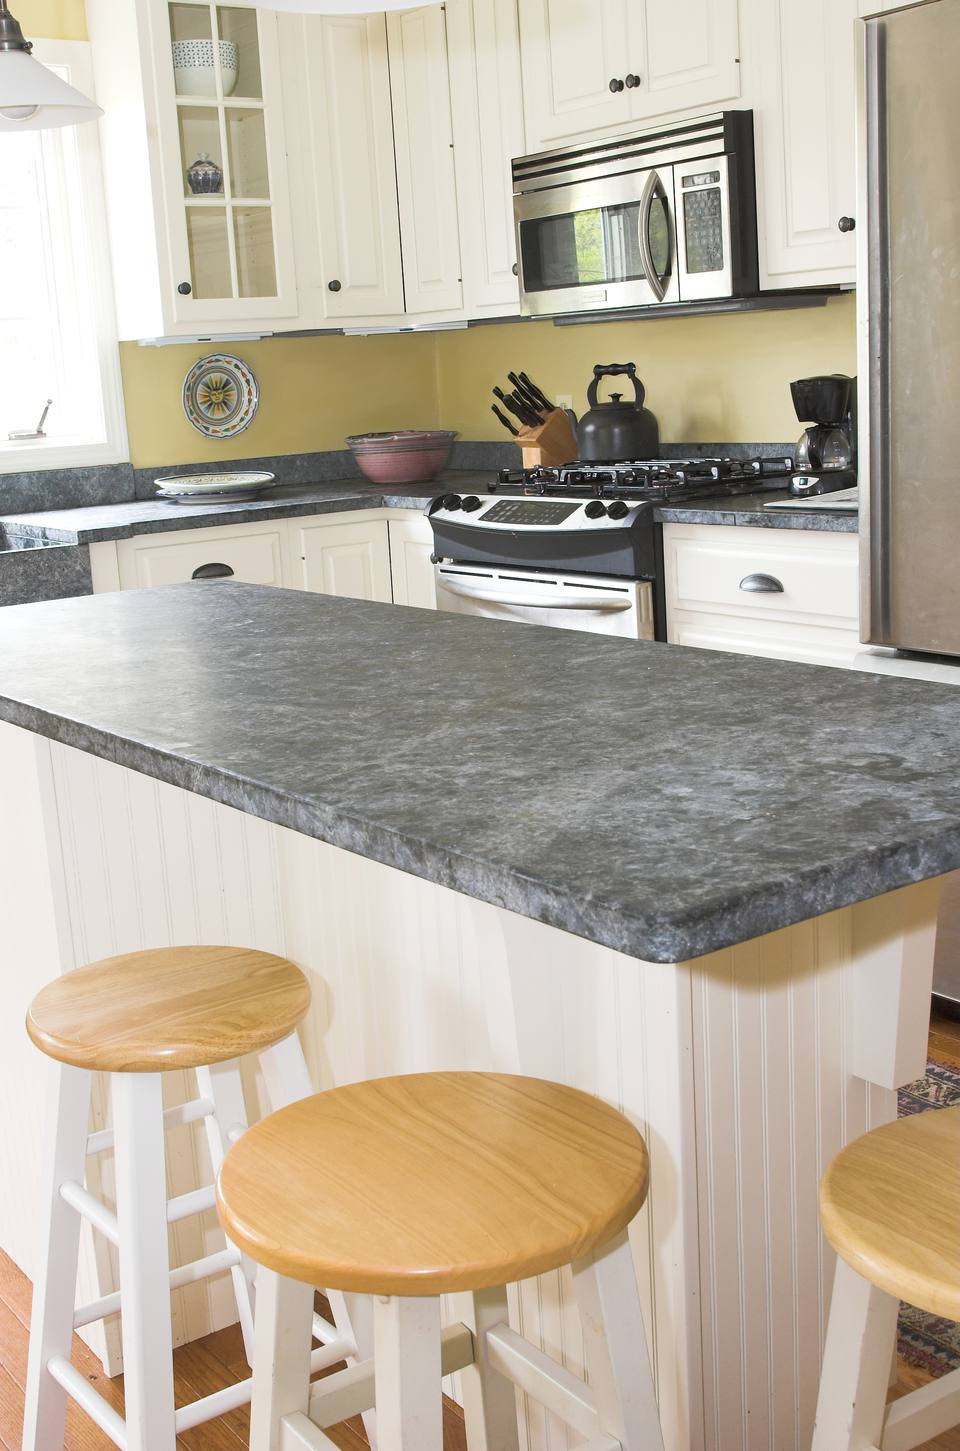 co astonishing slate stone nice countertop countertops flooring and styles for tile of decor saomc picture style kitchen trends black stunning backsplash with